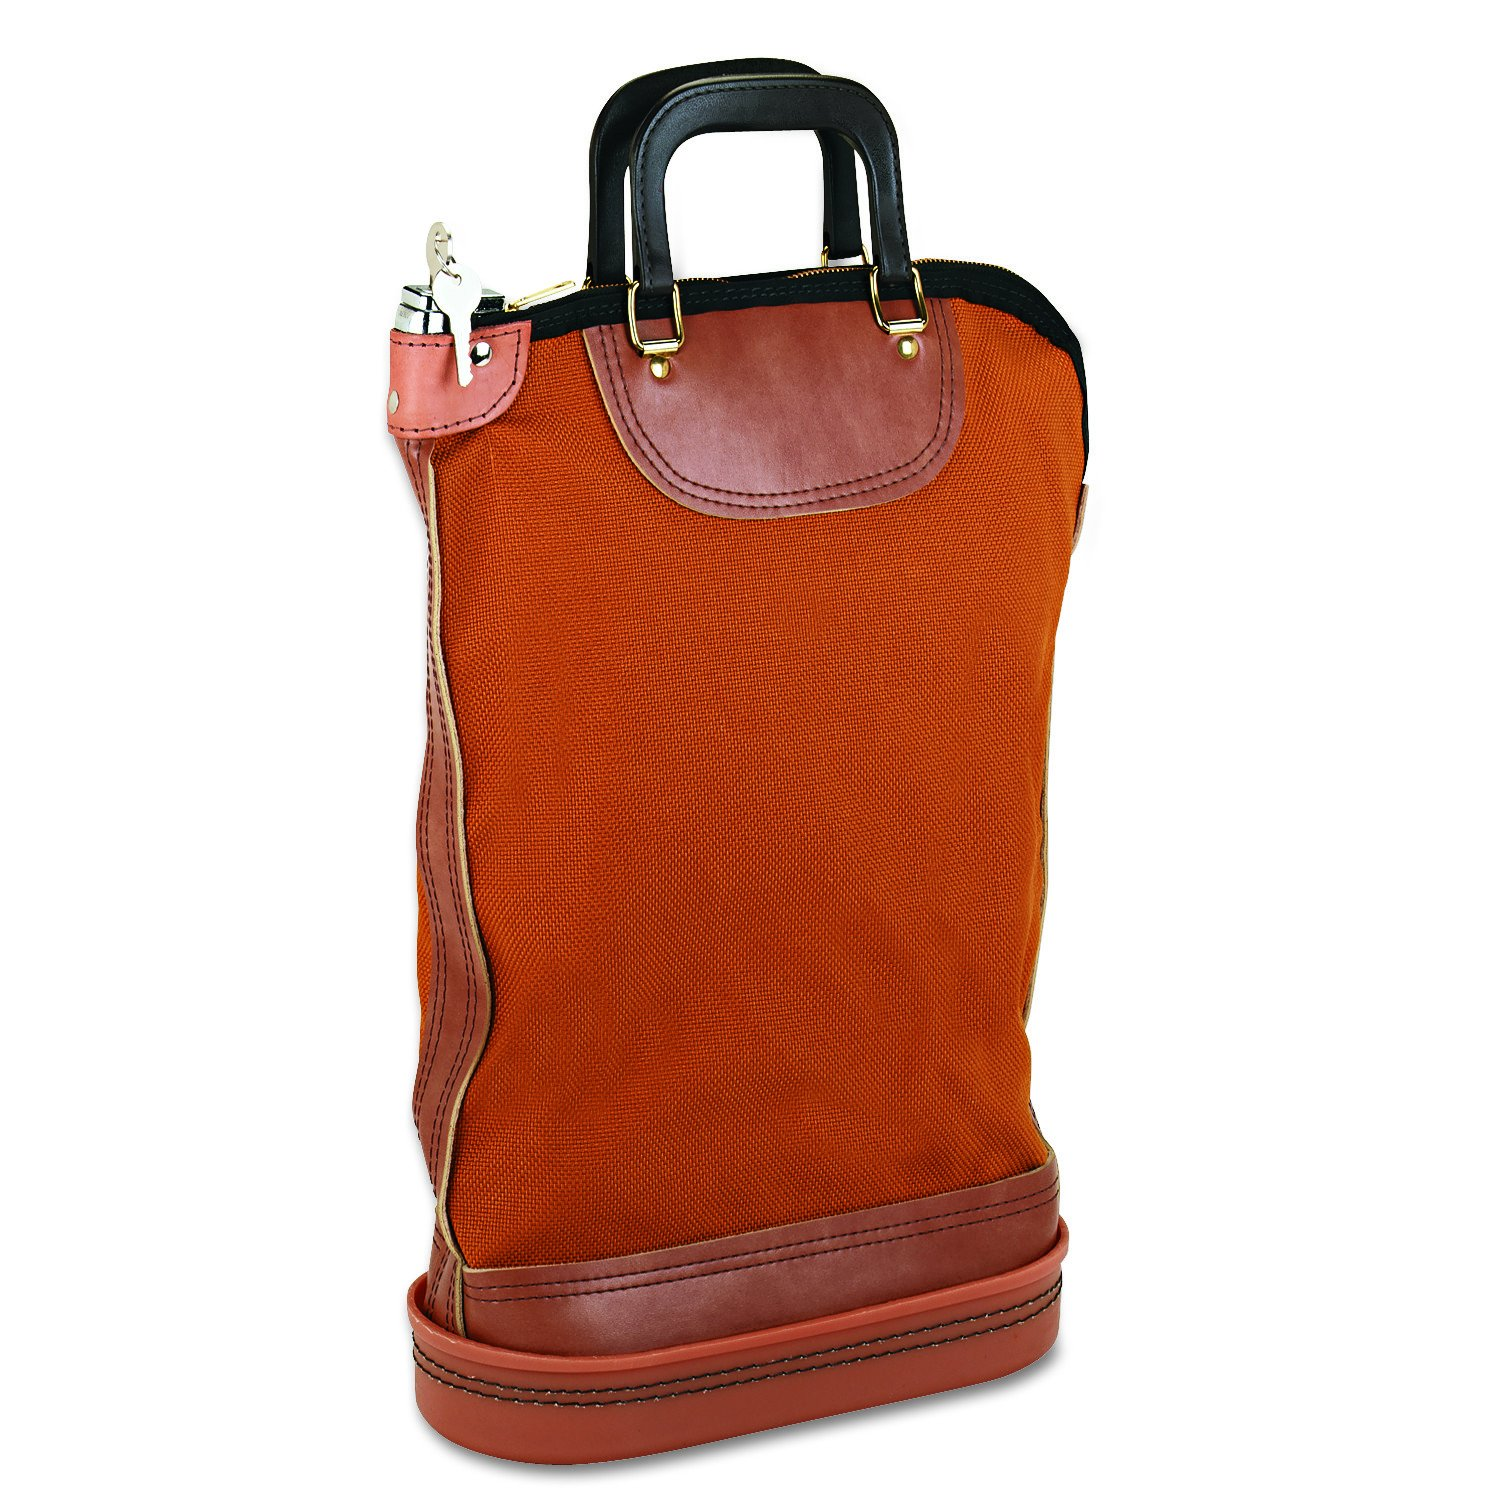 PM Company Regulation Post Office Security Mail Bag, Zipper Lock, Gold, Brown (04644) by PM Company